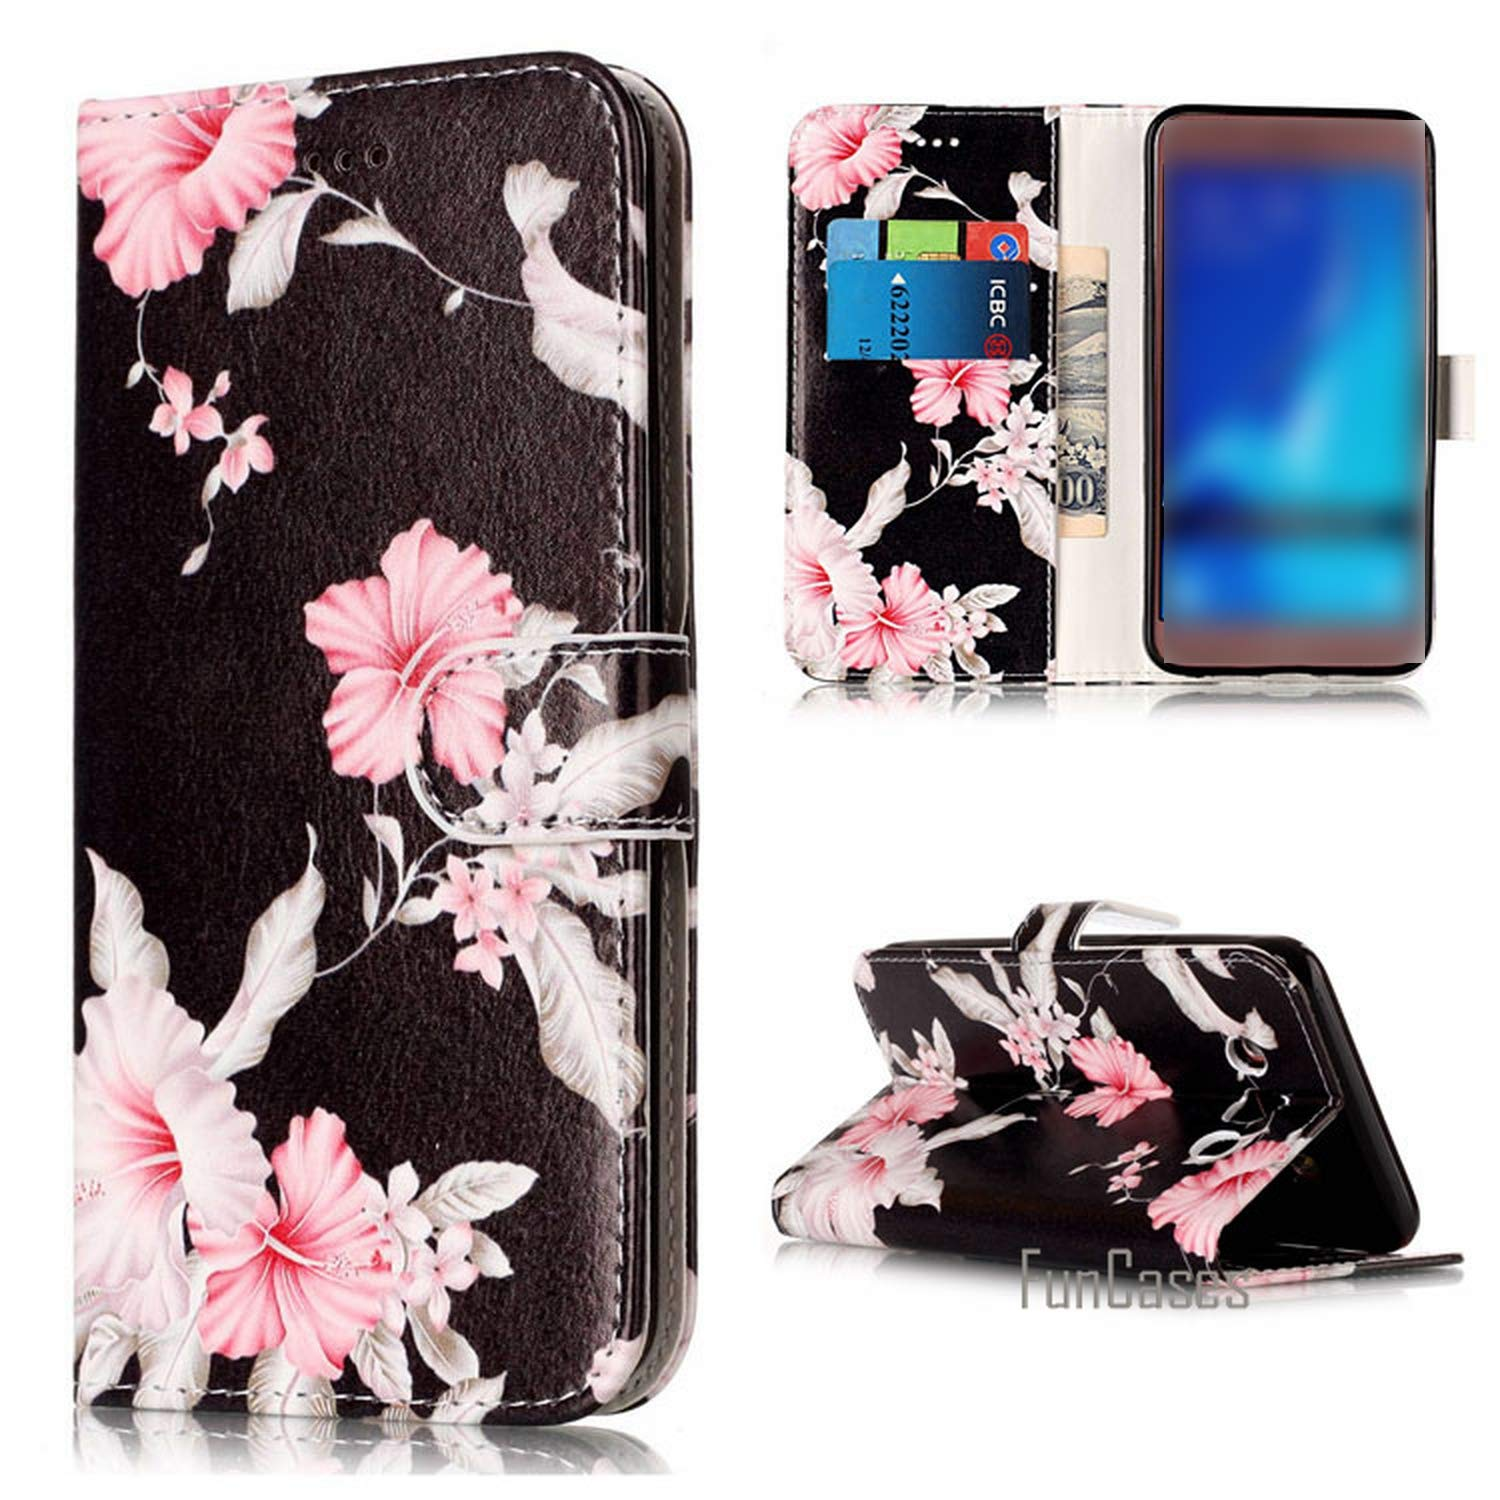 Amazon.com: Phone Case Pu Leather Case for Samsung Galaxy ...